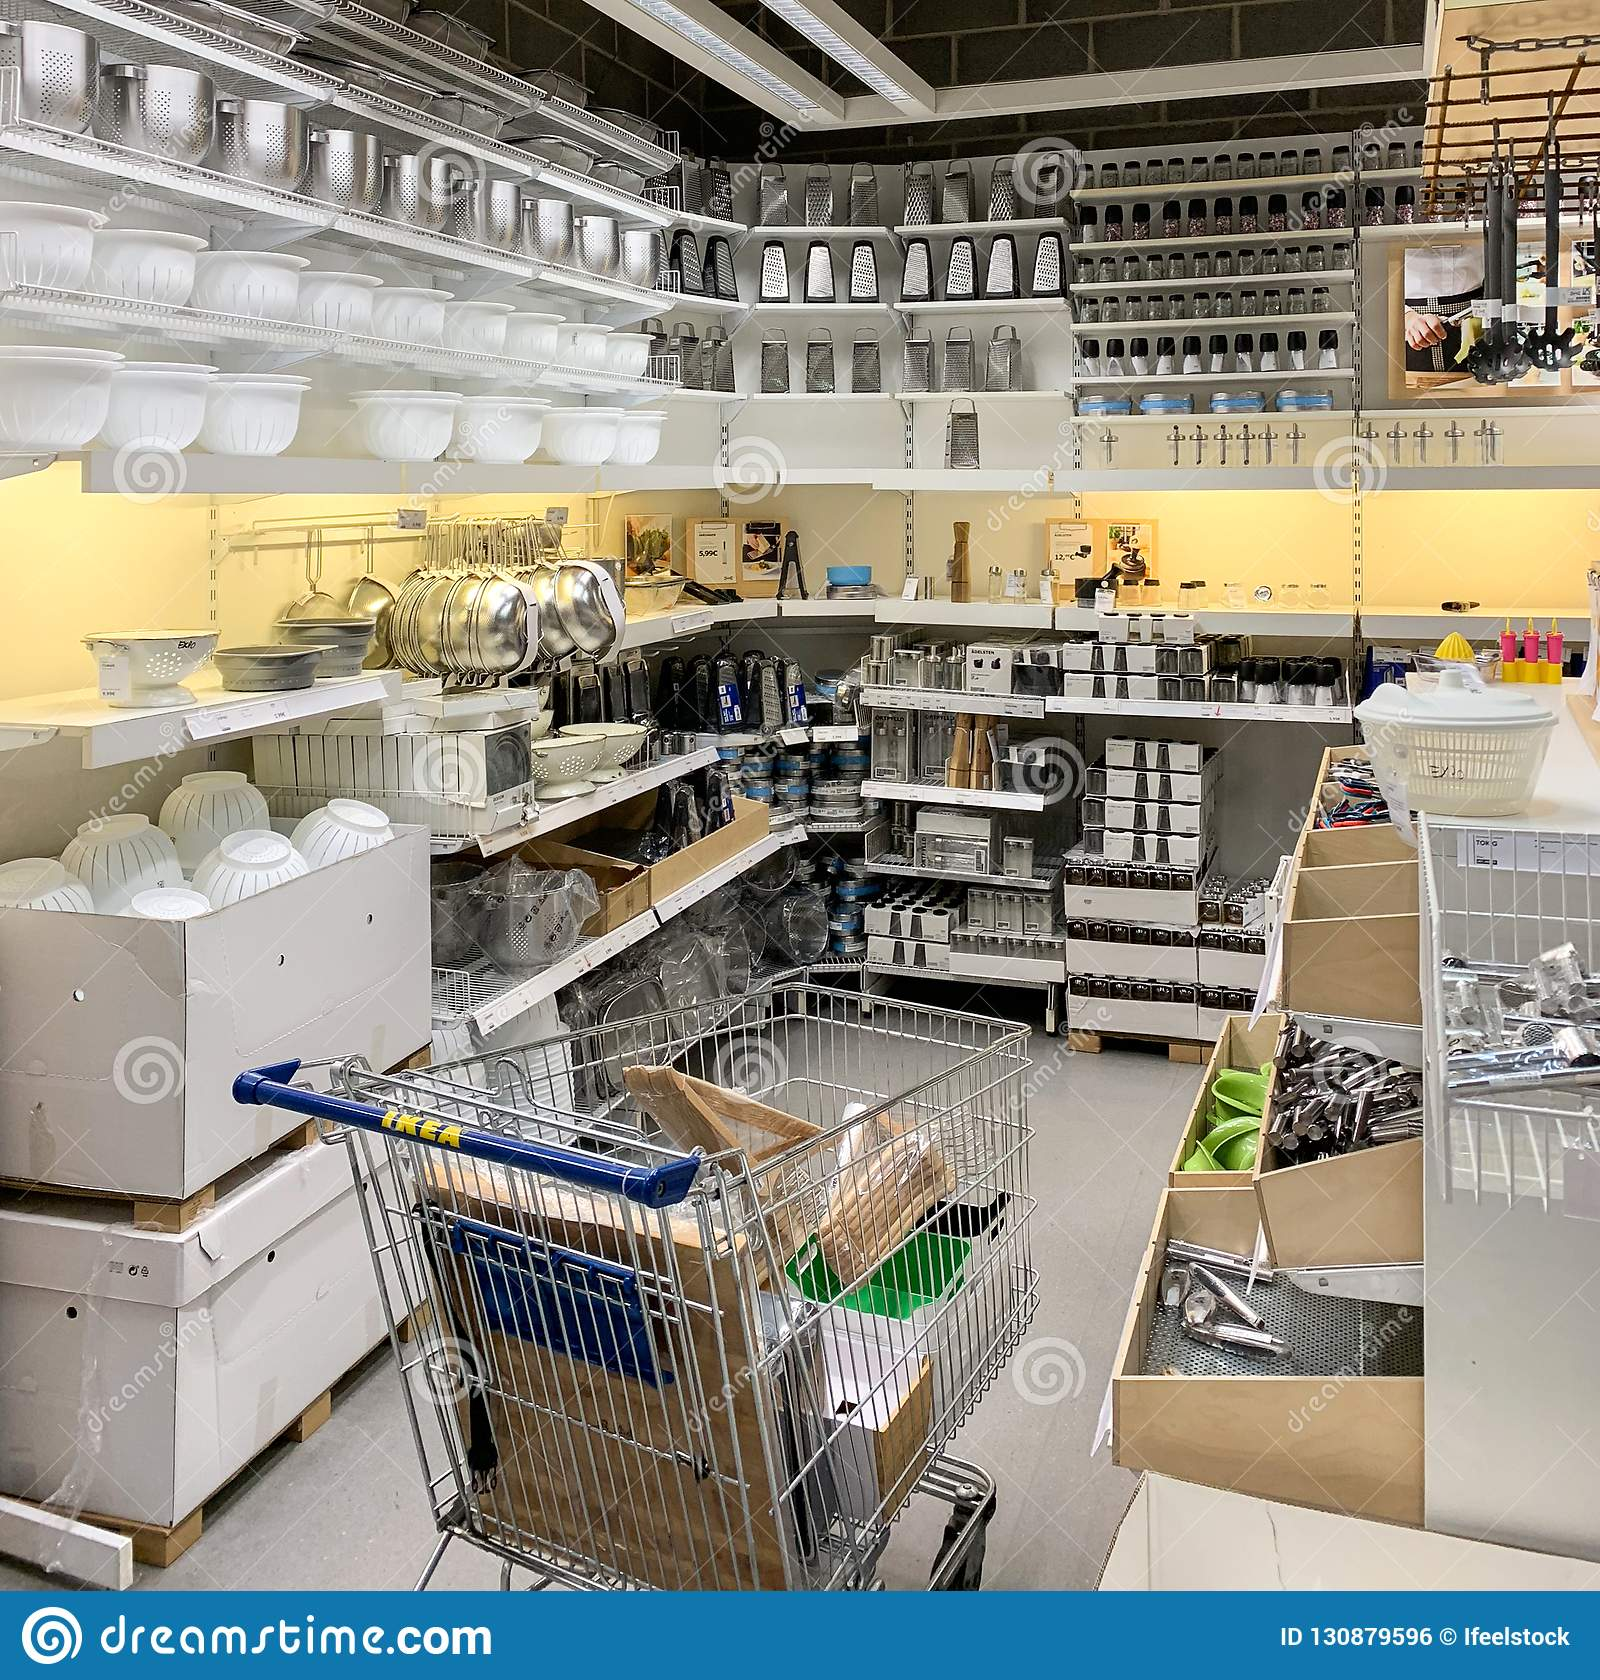 Kitchen Utensils For Sale Inside IKEA Store Editorial Photo ...